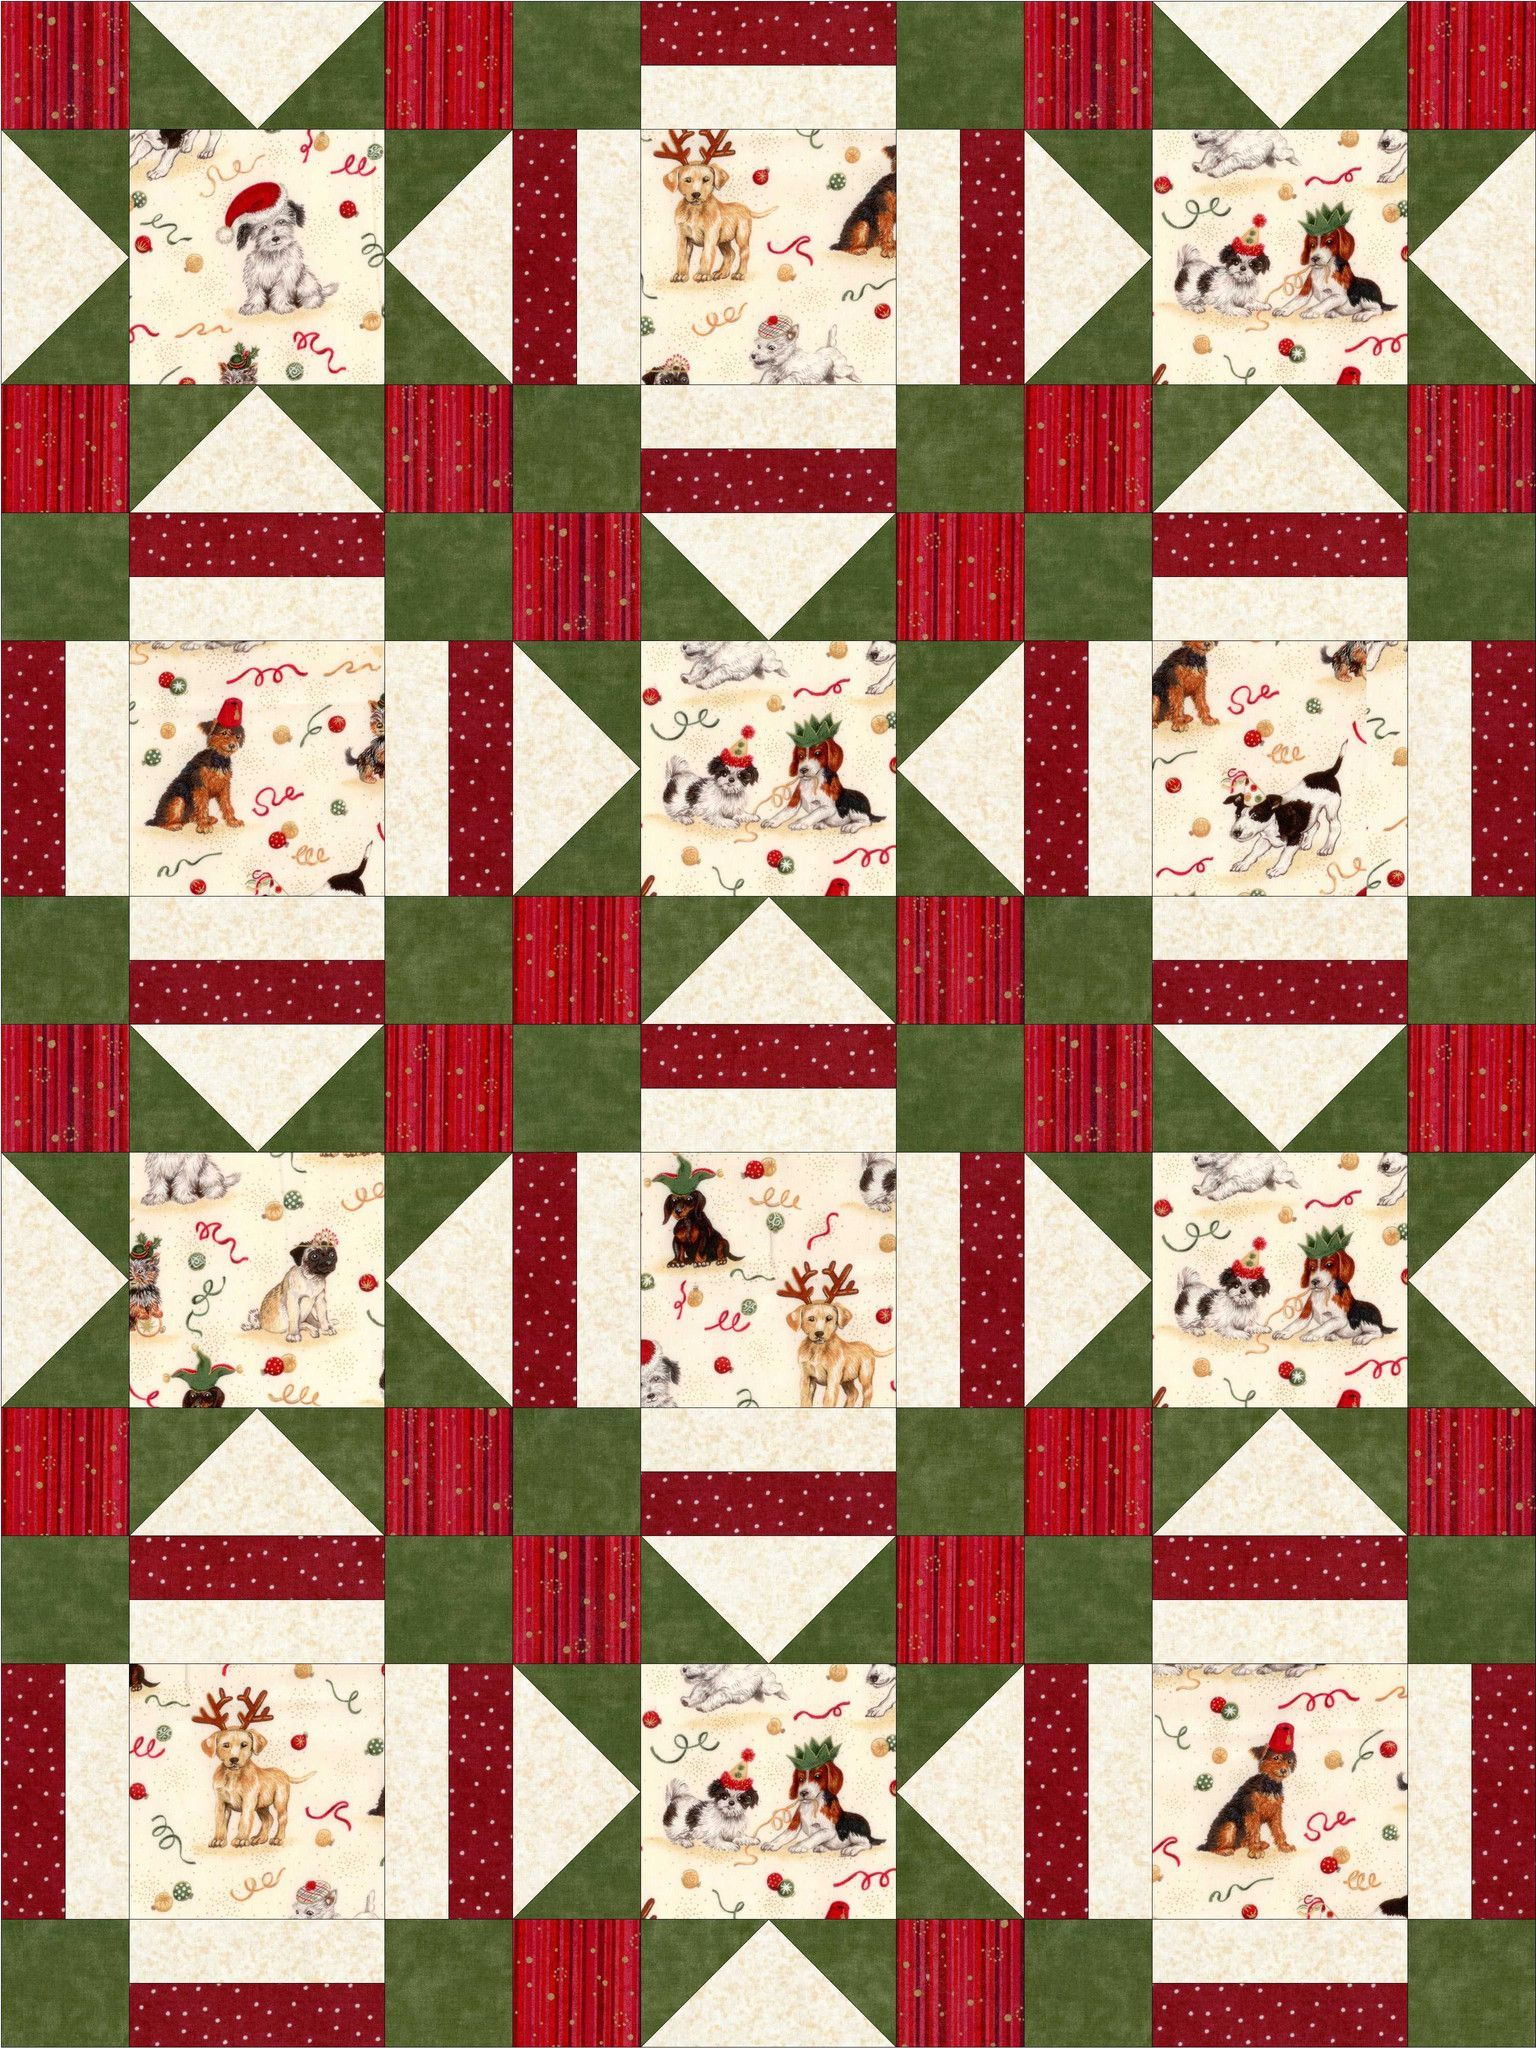 Such An Adorable Sweet Quilt Kit With All These Different Puppy Dogs